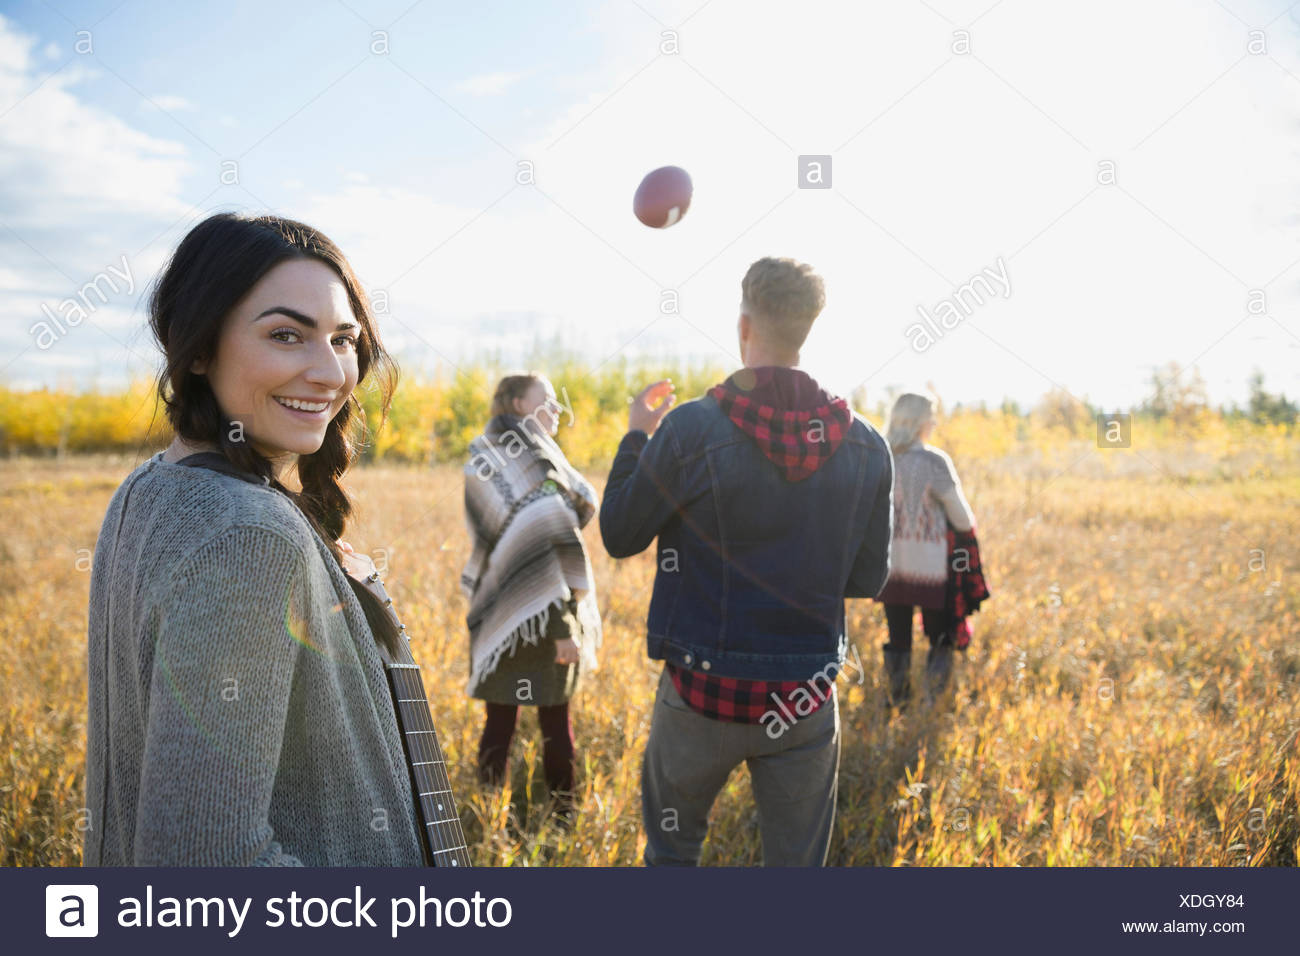 Portrait smiling young woman with friends in sunny field Stock Photo